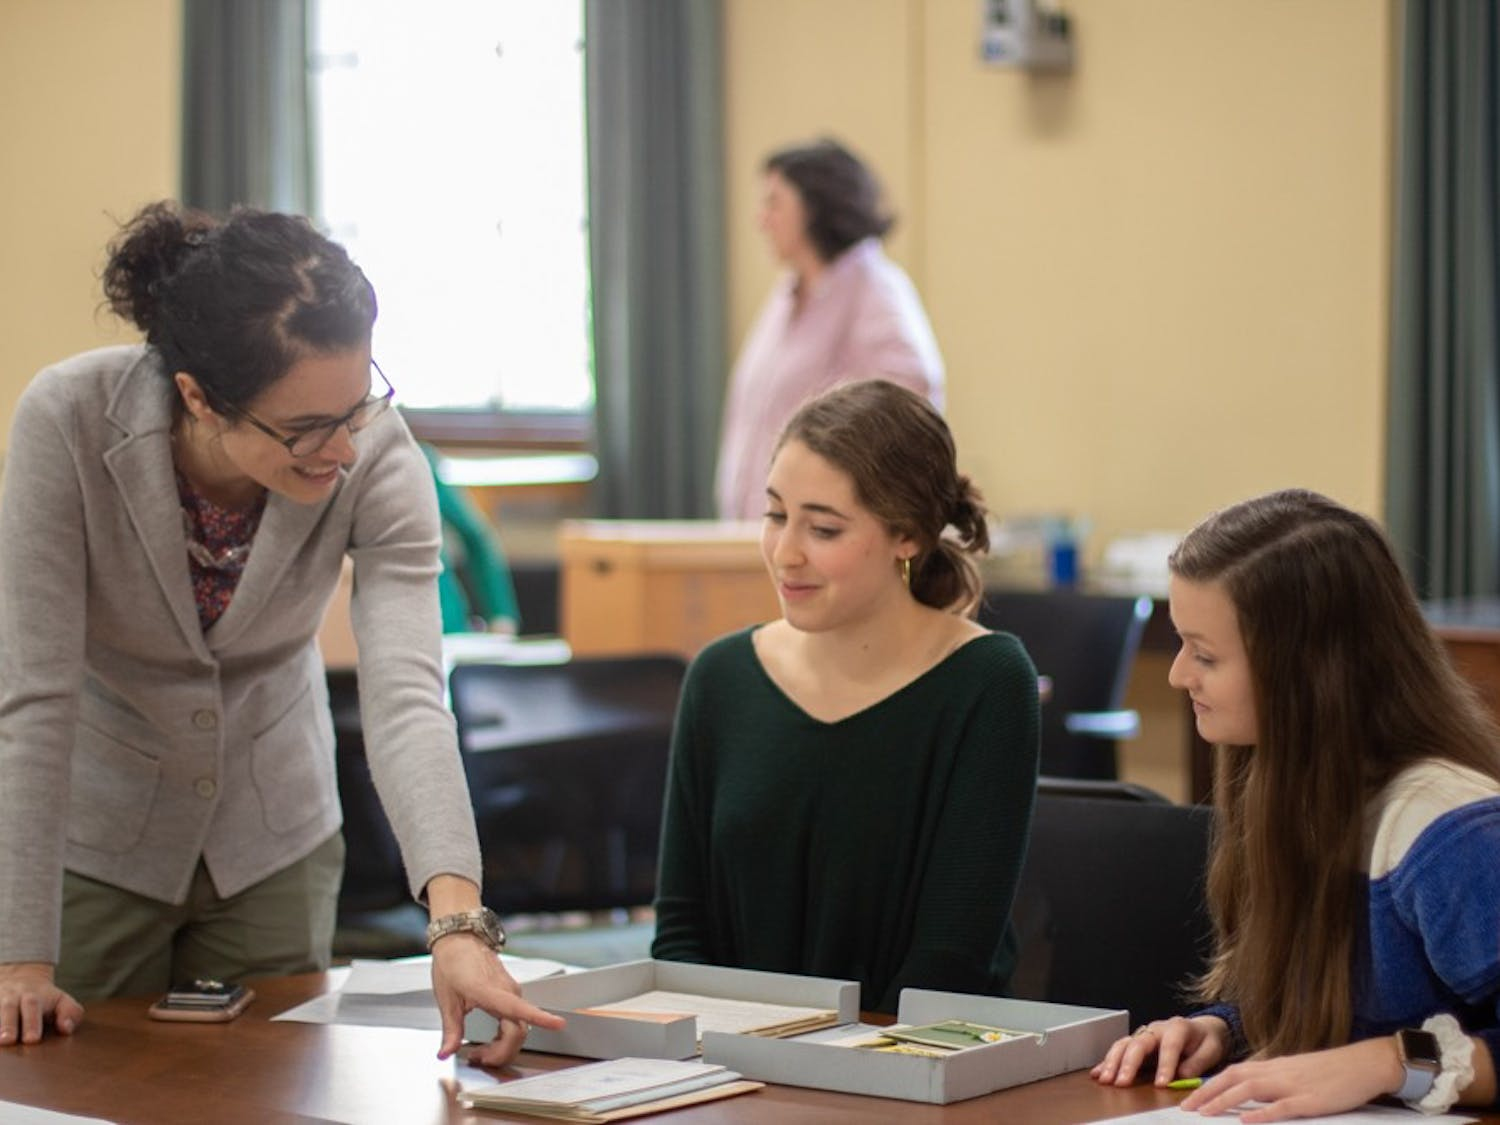 Emily Orland, a first-year history and journalism double major, and Brynn Garner, a junior environmental science and history double major, are instructed by Professor Katherine Turk in Wilson Library on Thursday, Jan. 16, 2020. Photo courtesy of Johnny Andrews.